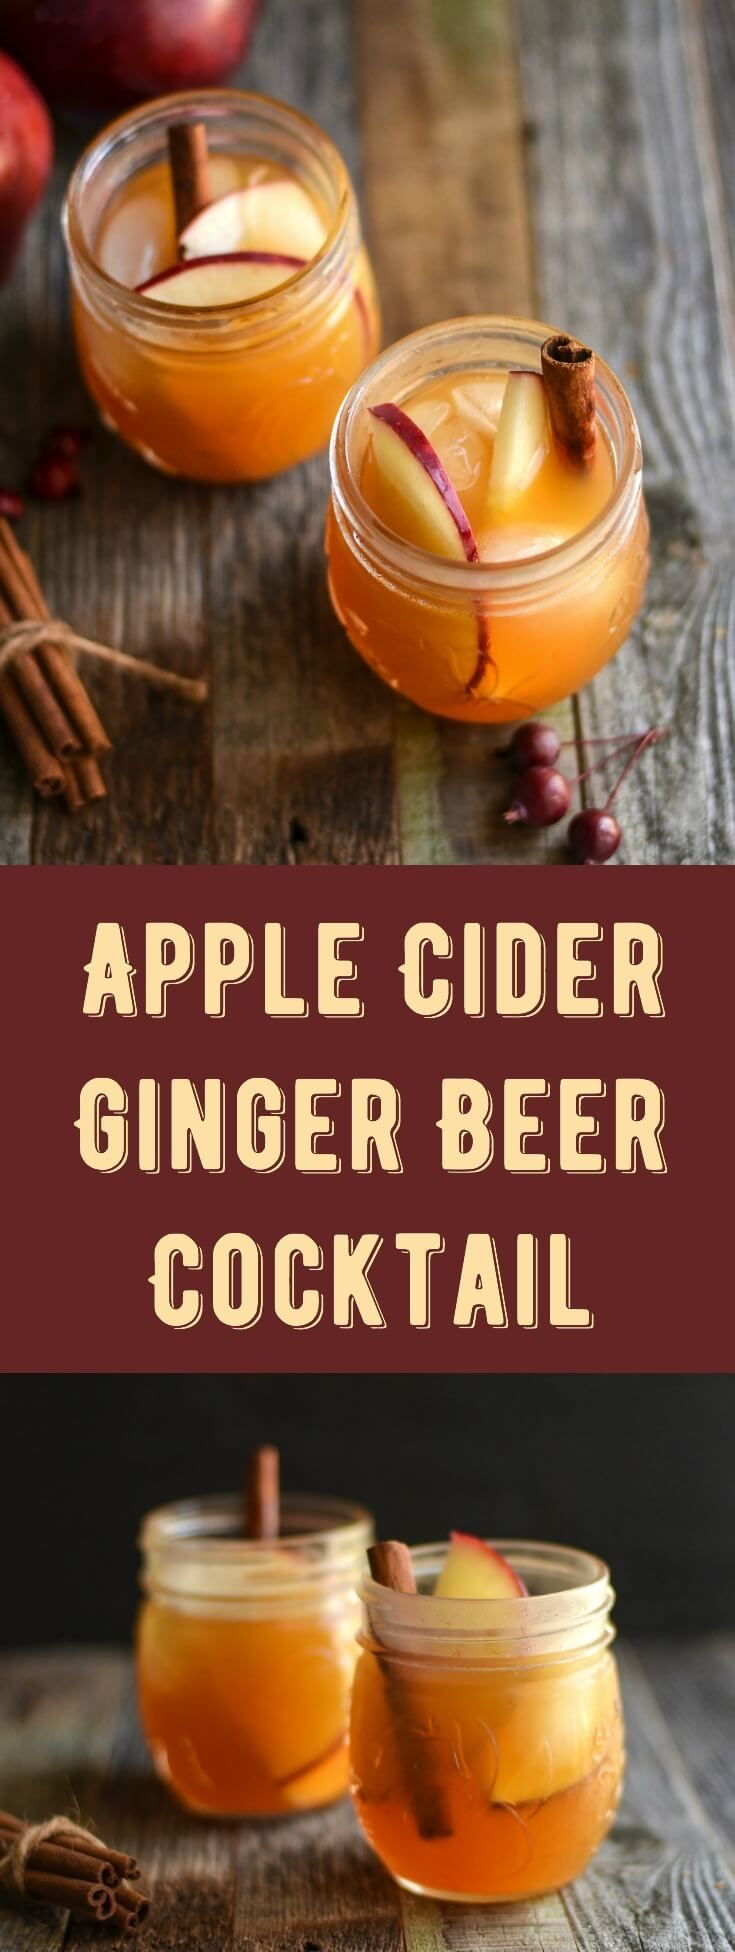 Refreshing Ginger Beer Cocktail with Apple Cider